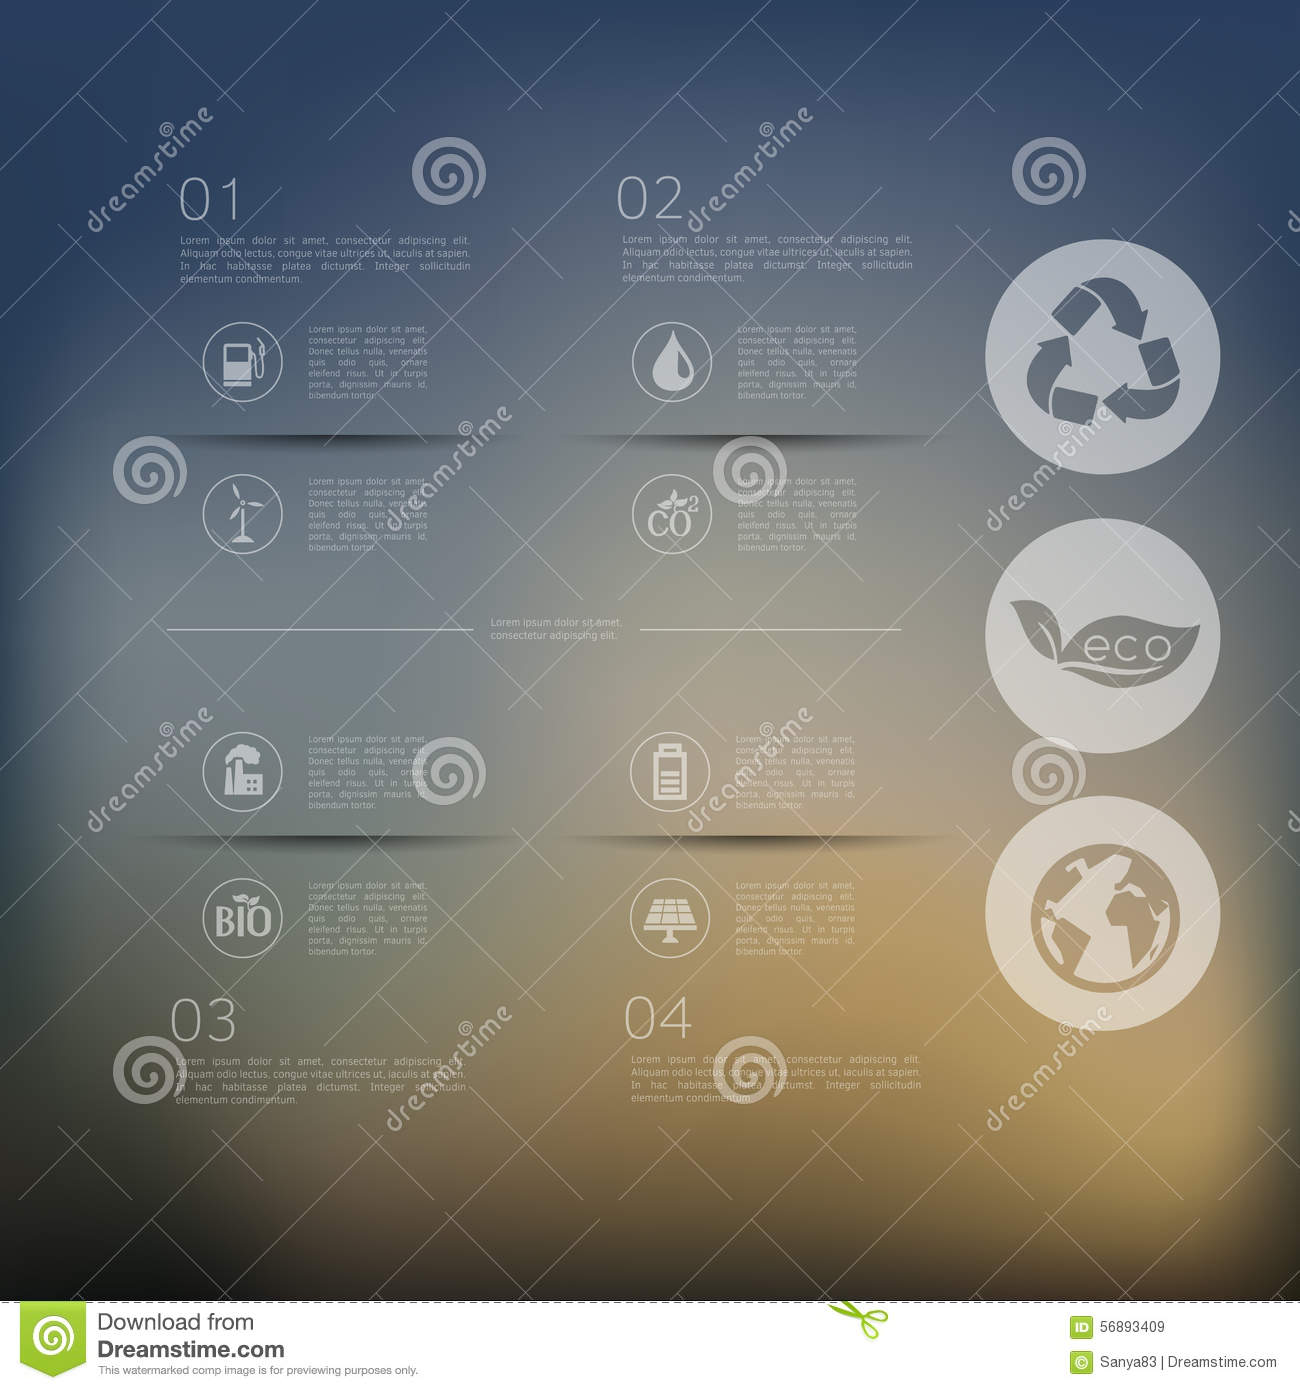 Ecologia infographic con fondo unfocused